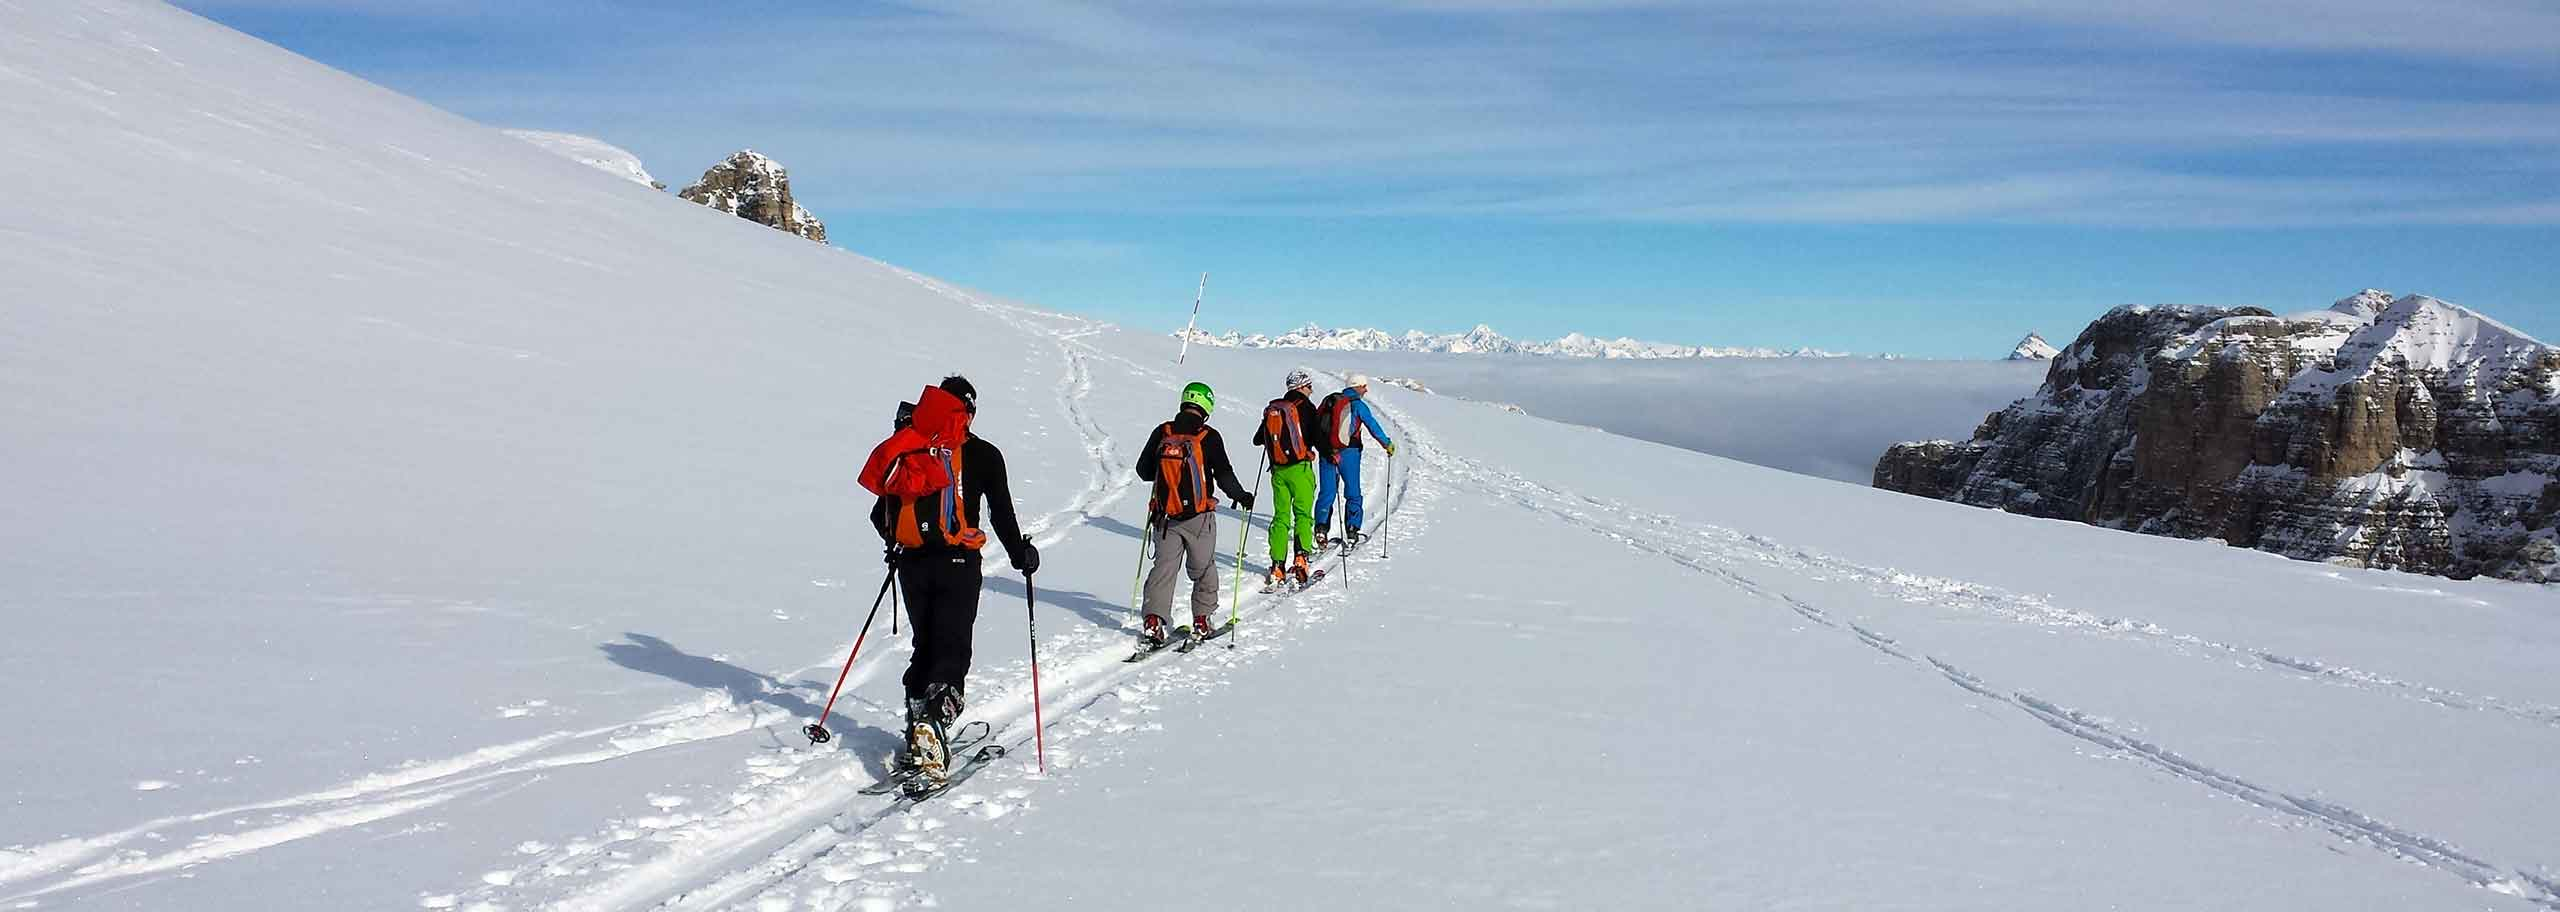 Ski Mountaineering with a Mountain Guide in Arabba